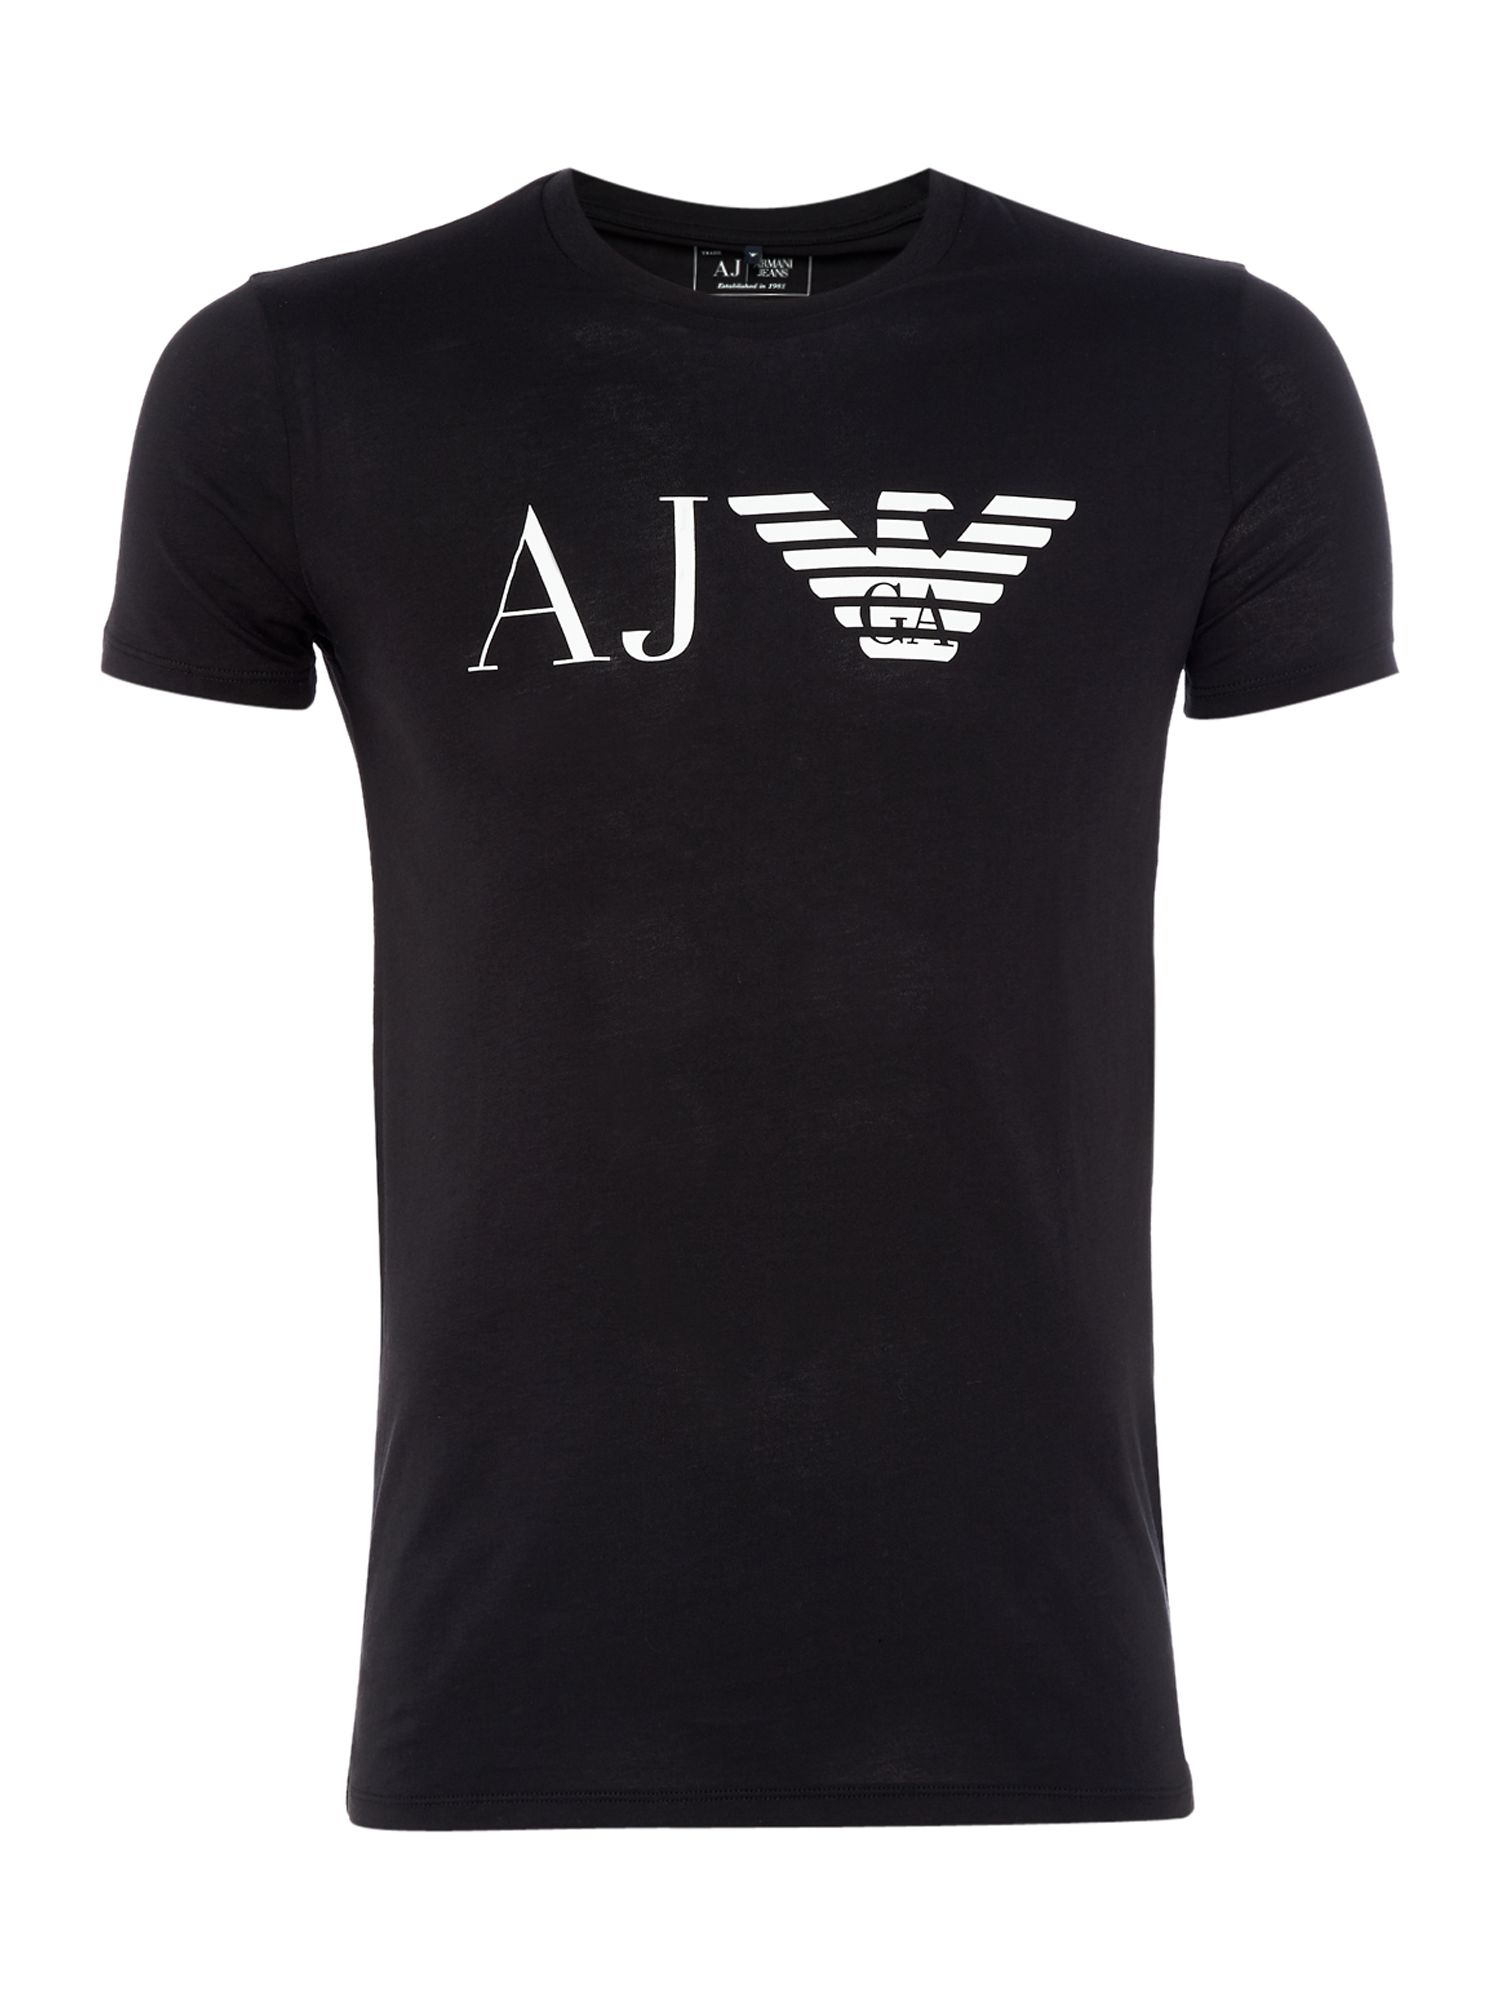 Men's Armani Jeans Regular fit AJ eagle logo printed t shirt, Black